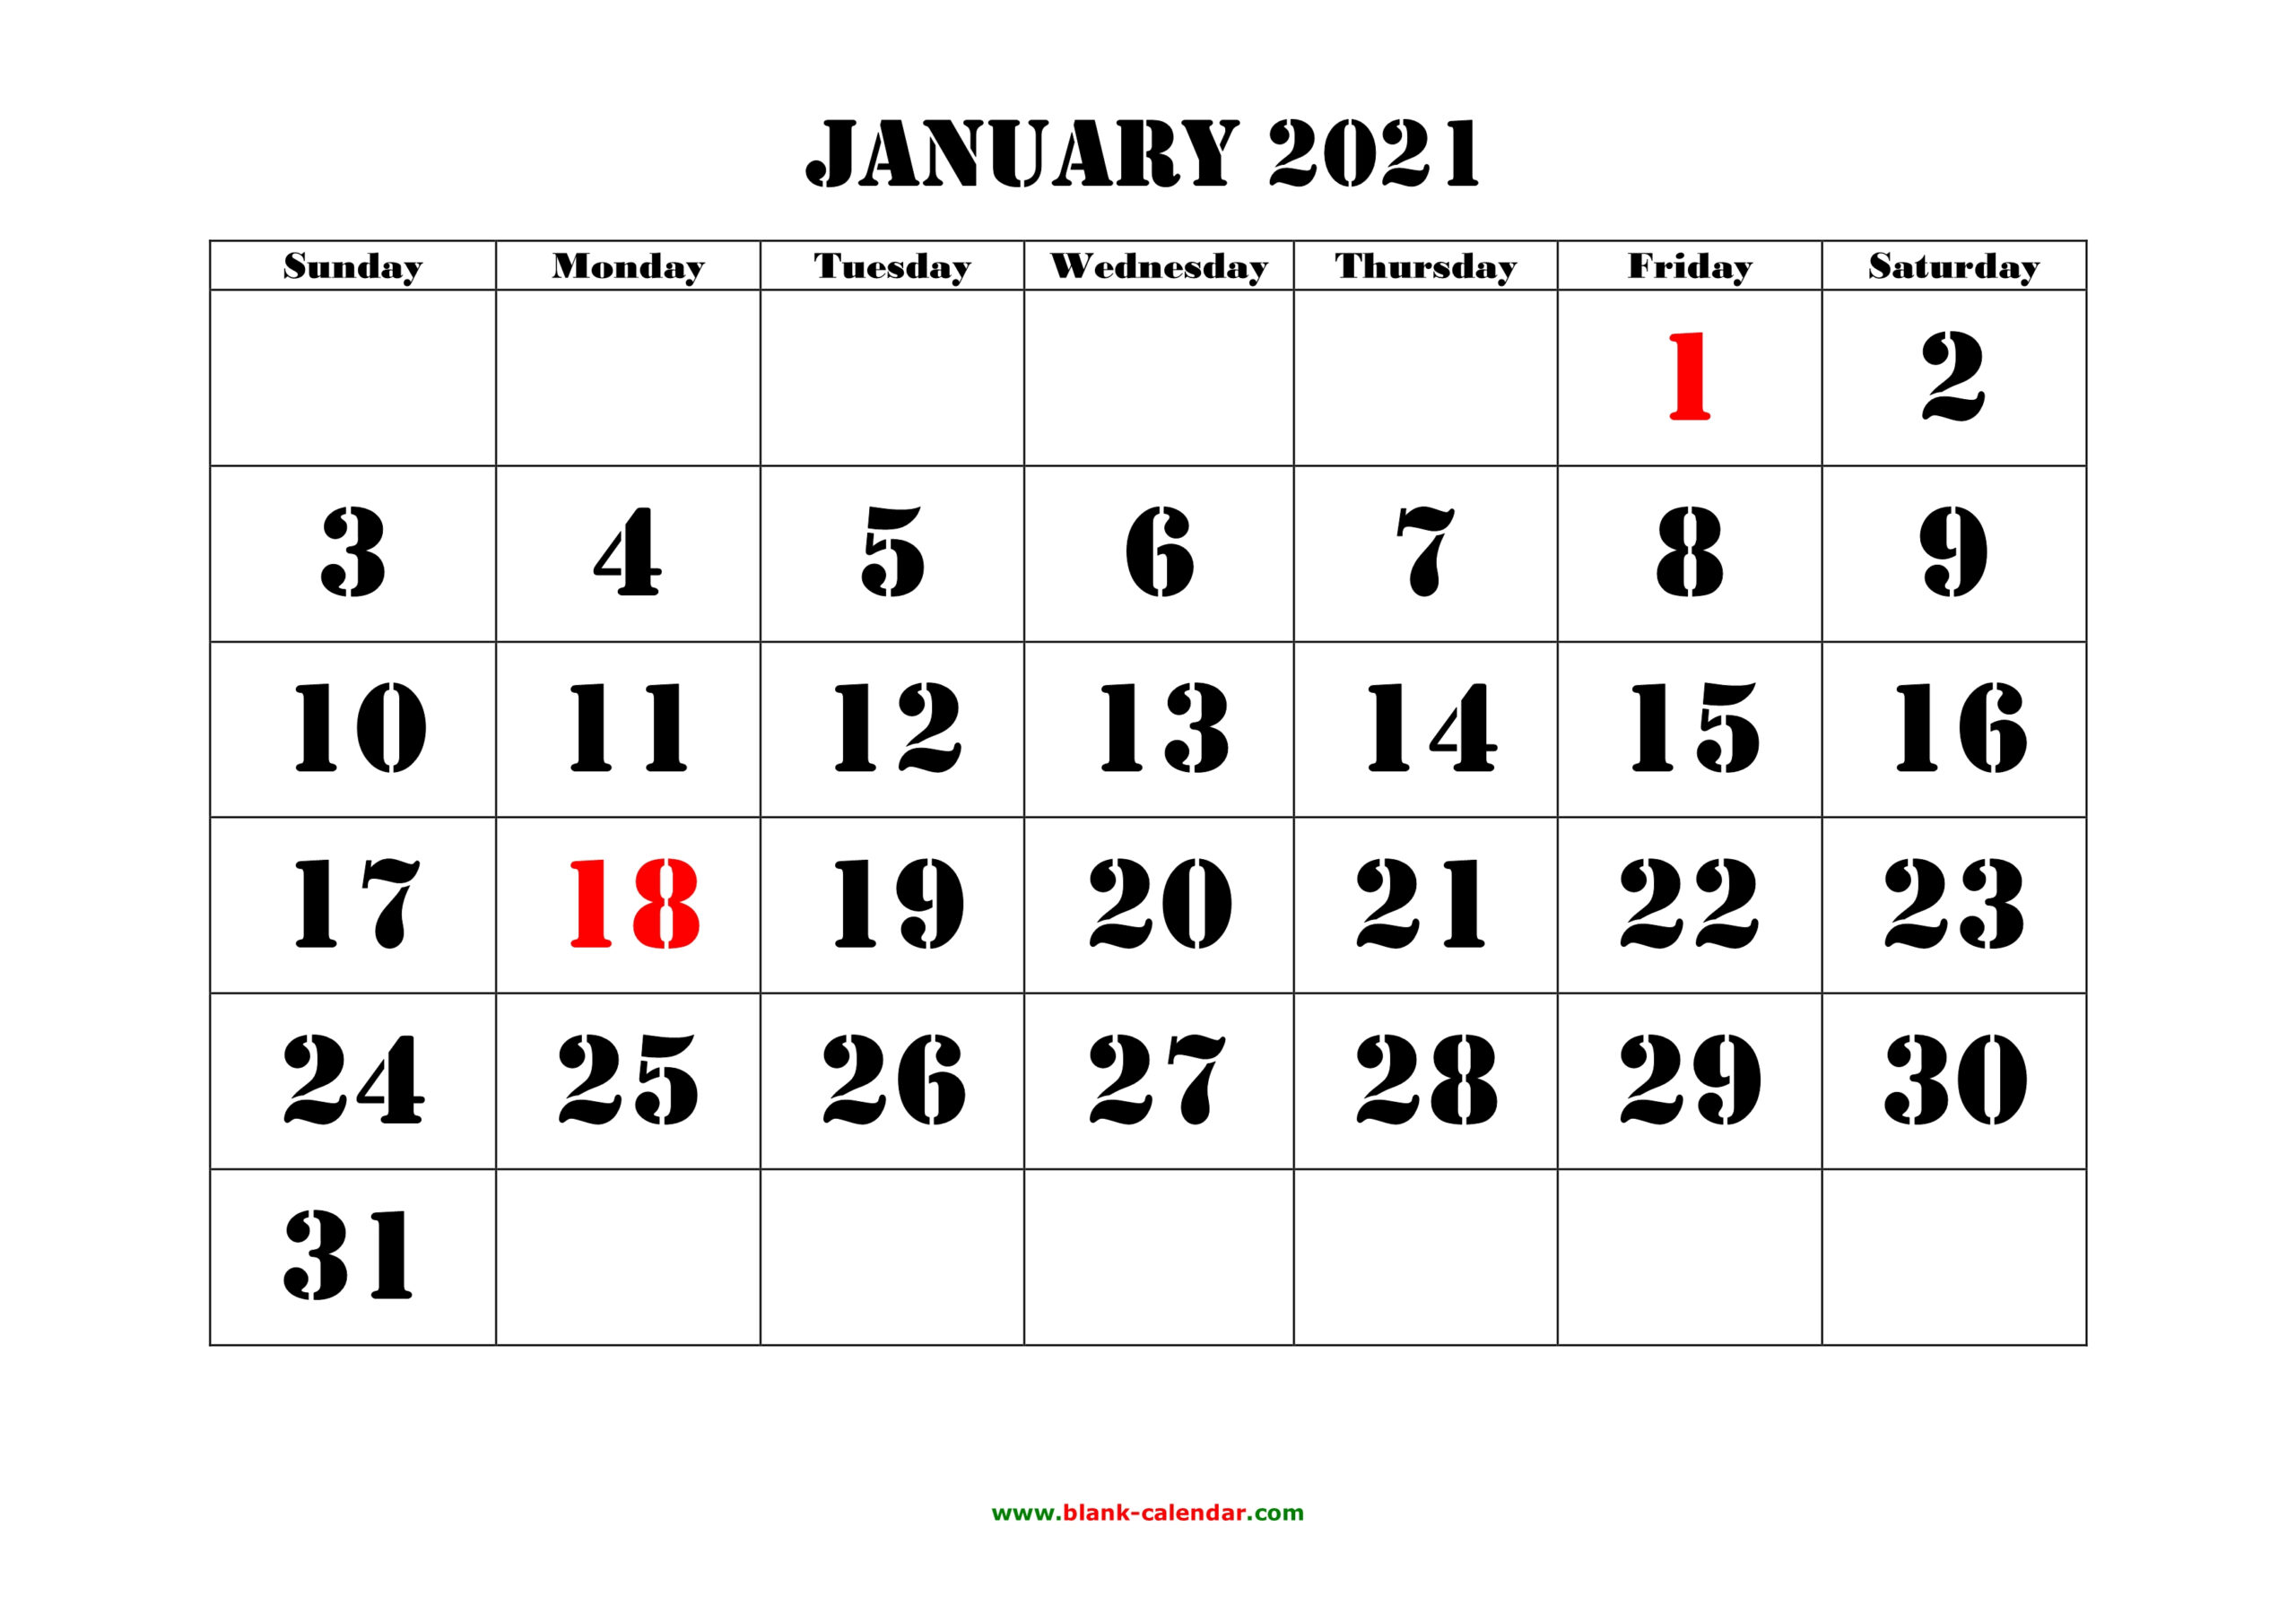 Free Download Printable Calendar 2021, Large Font Design pertaining to Printfree Calendar 2021 With Date Boxes